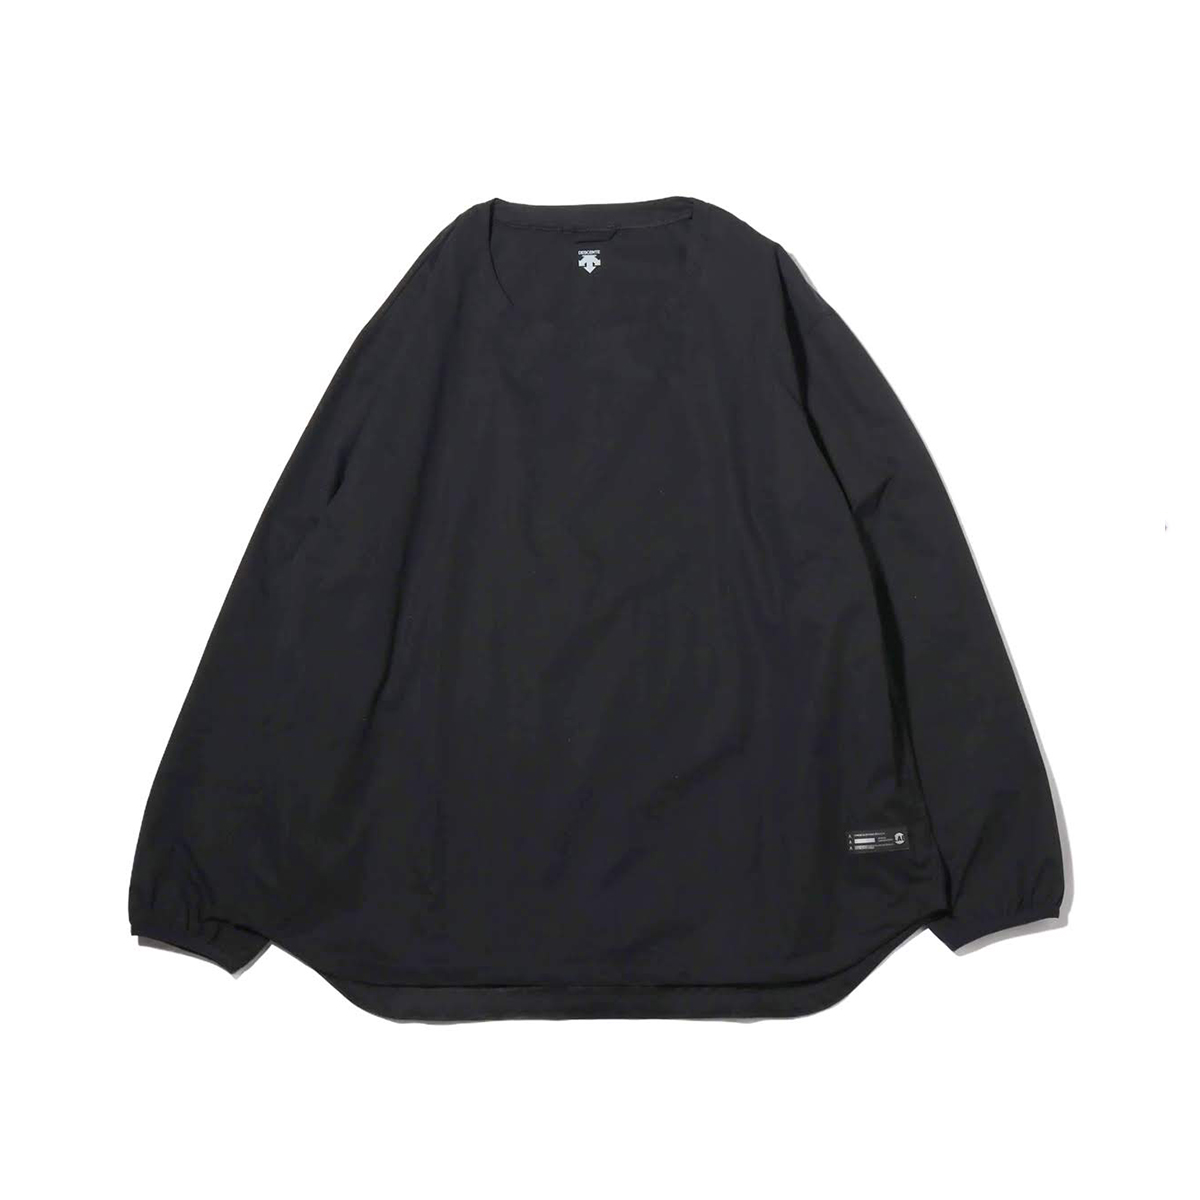 DESCENTE ddd X ATMOS LAB L/S PULLOVER SHIRT